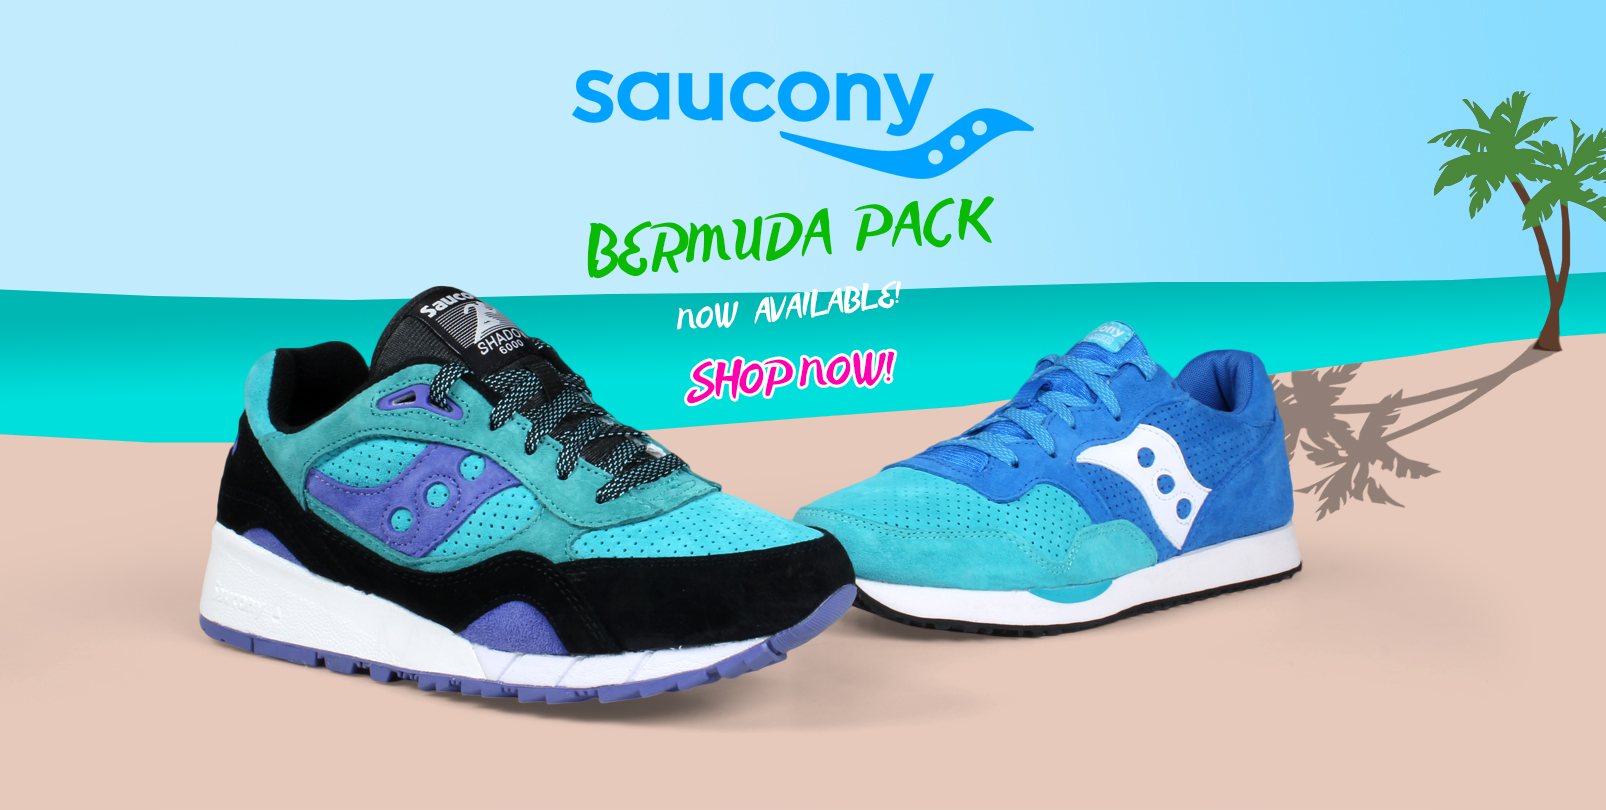 Saucony bermuda pack now available